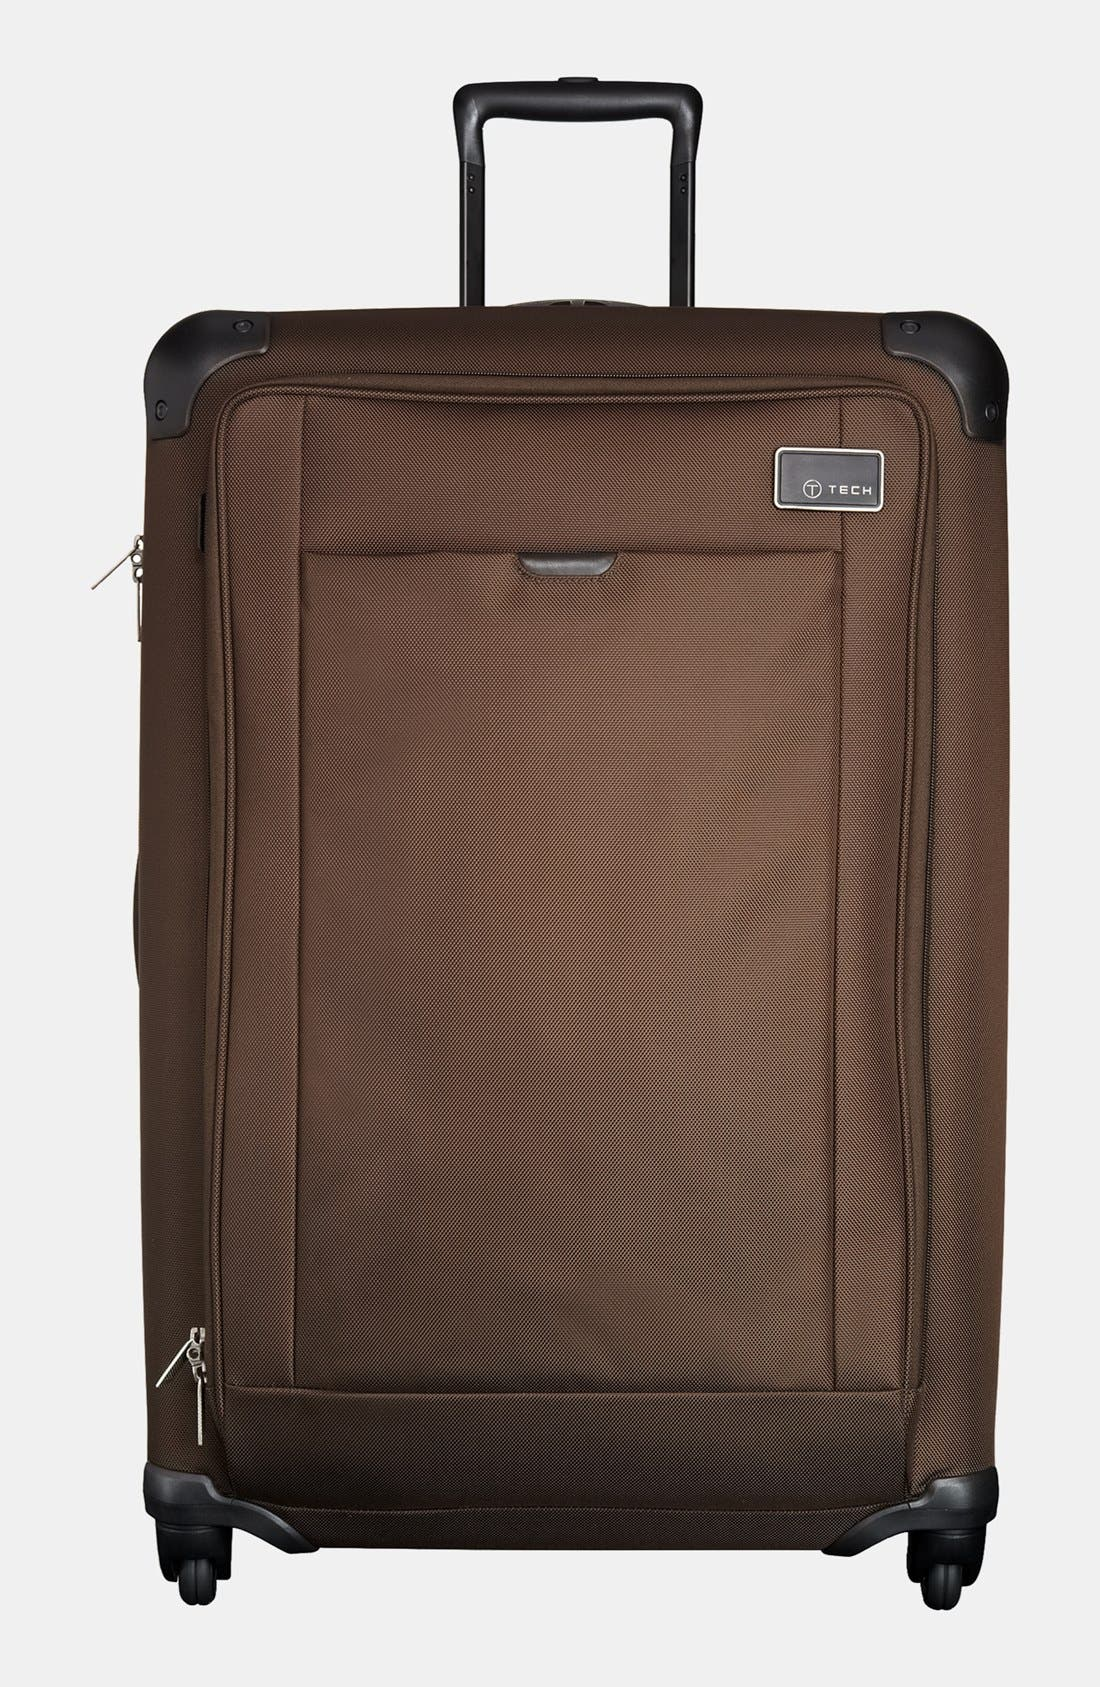 Alternate Image 1 Selected - Tumi 'T-Tech Network' Lightweight 4-Wheeled Large Trip Packing Case (30 Inch)